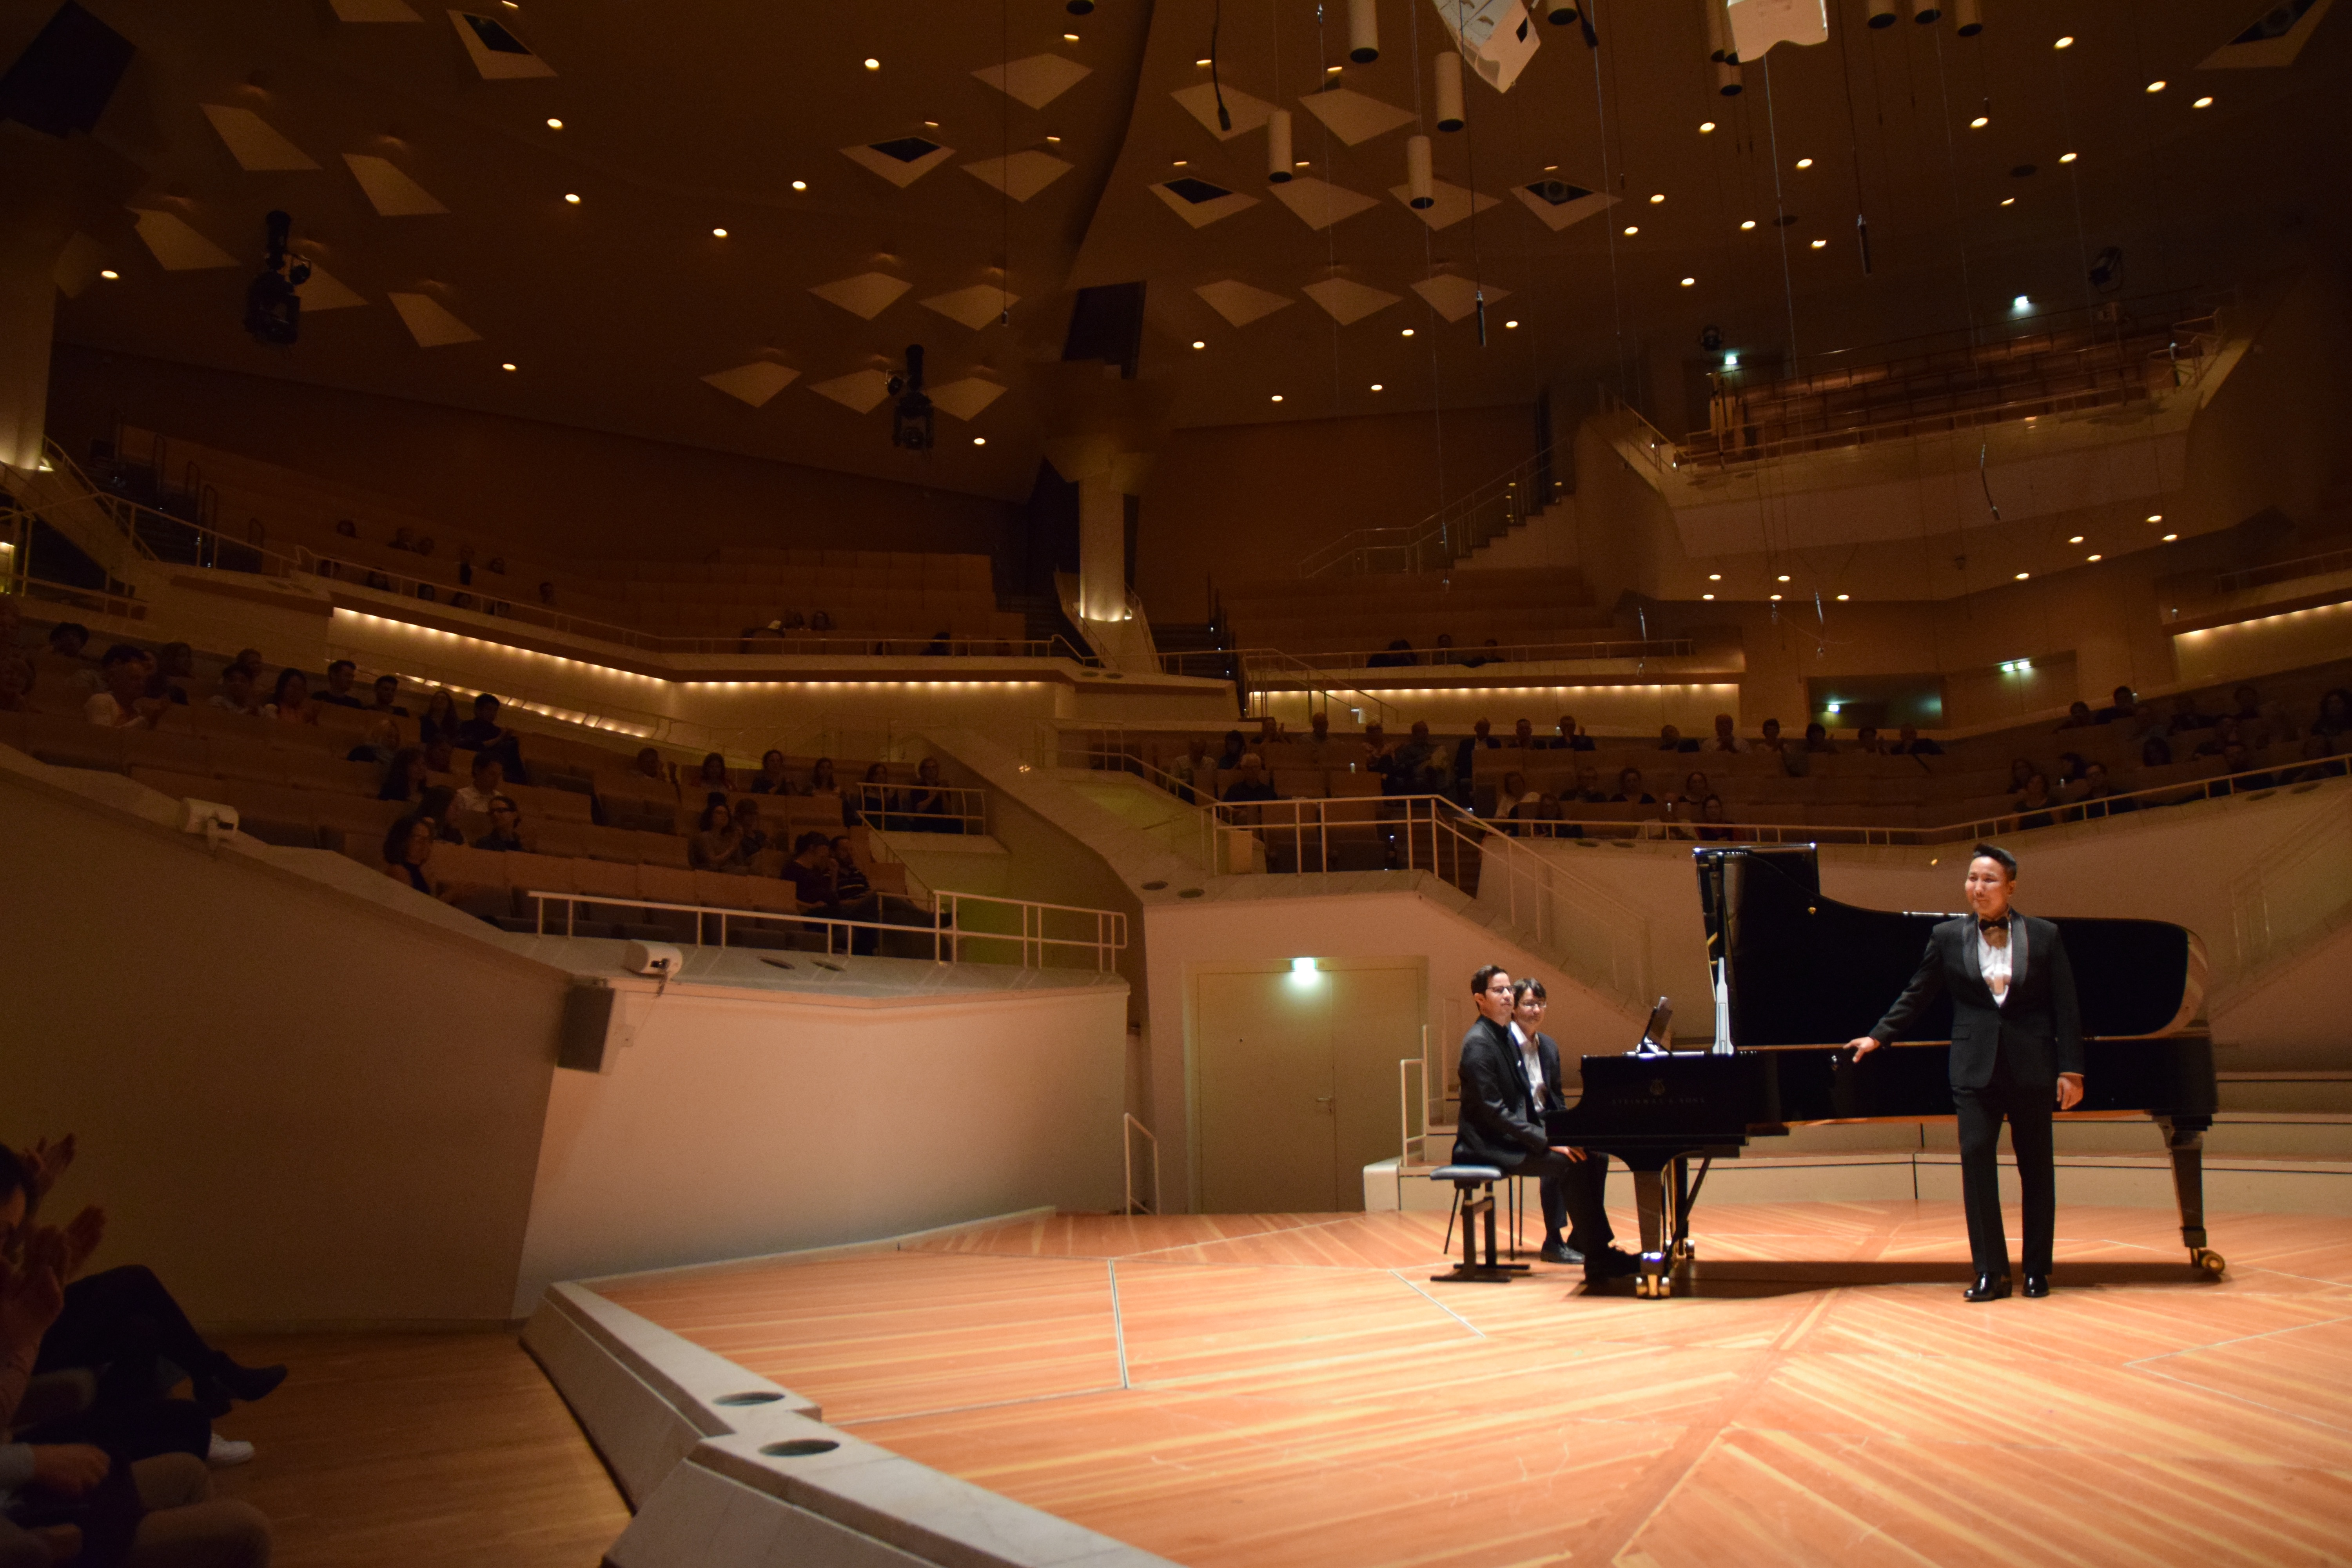 berliner music competition 34